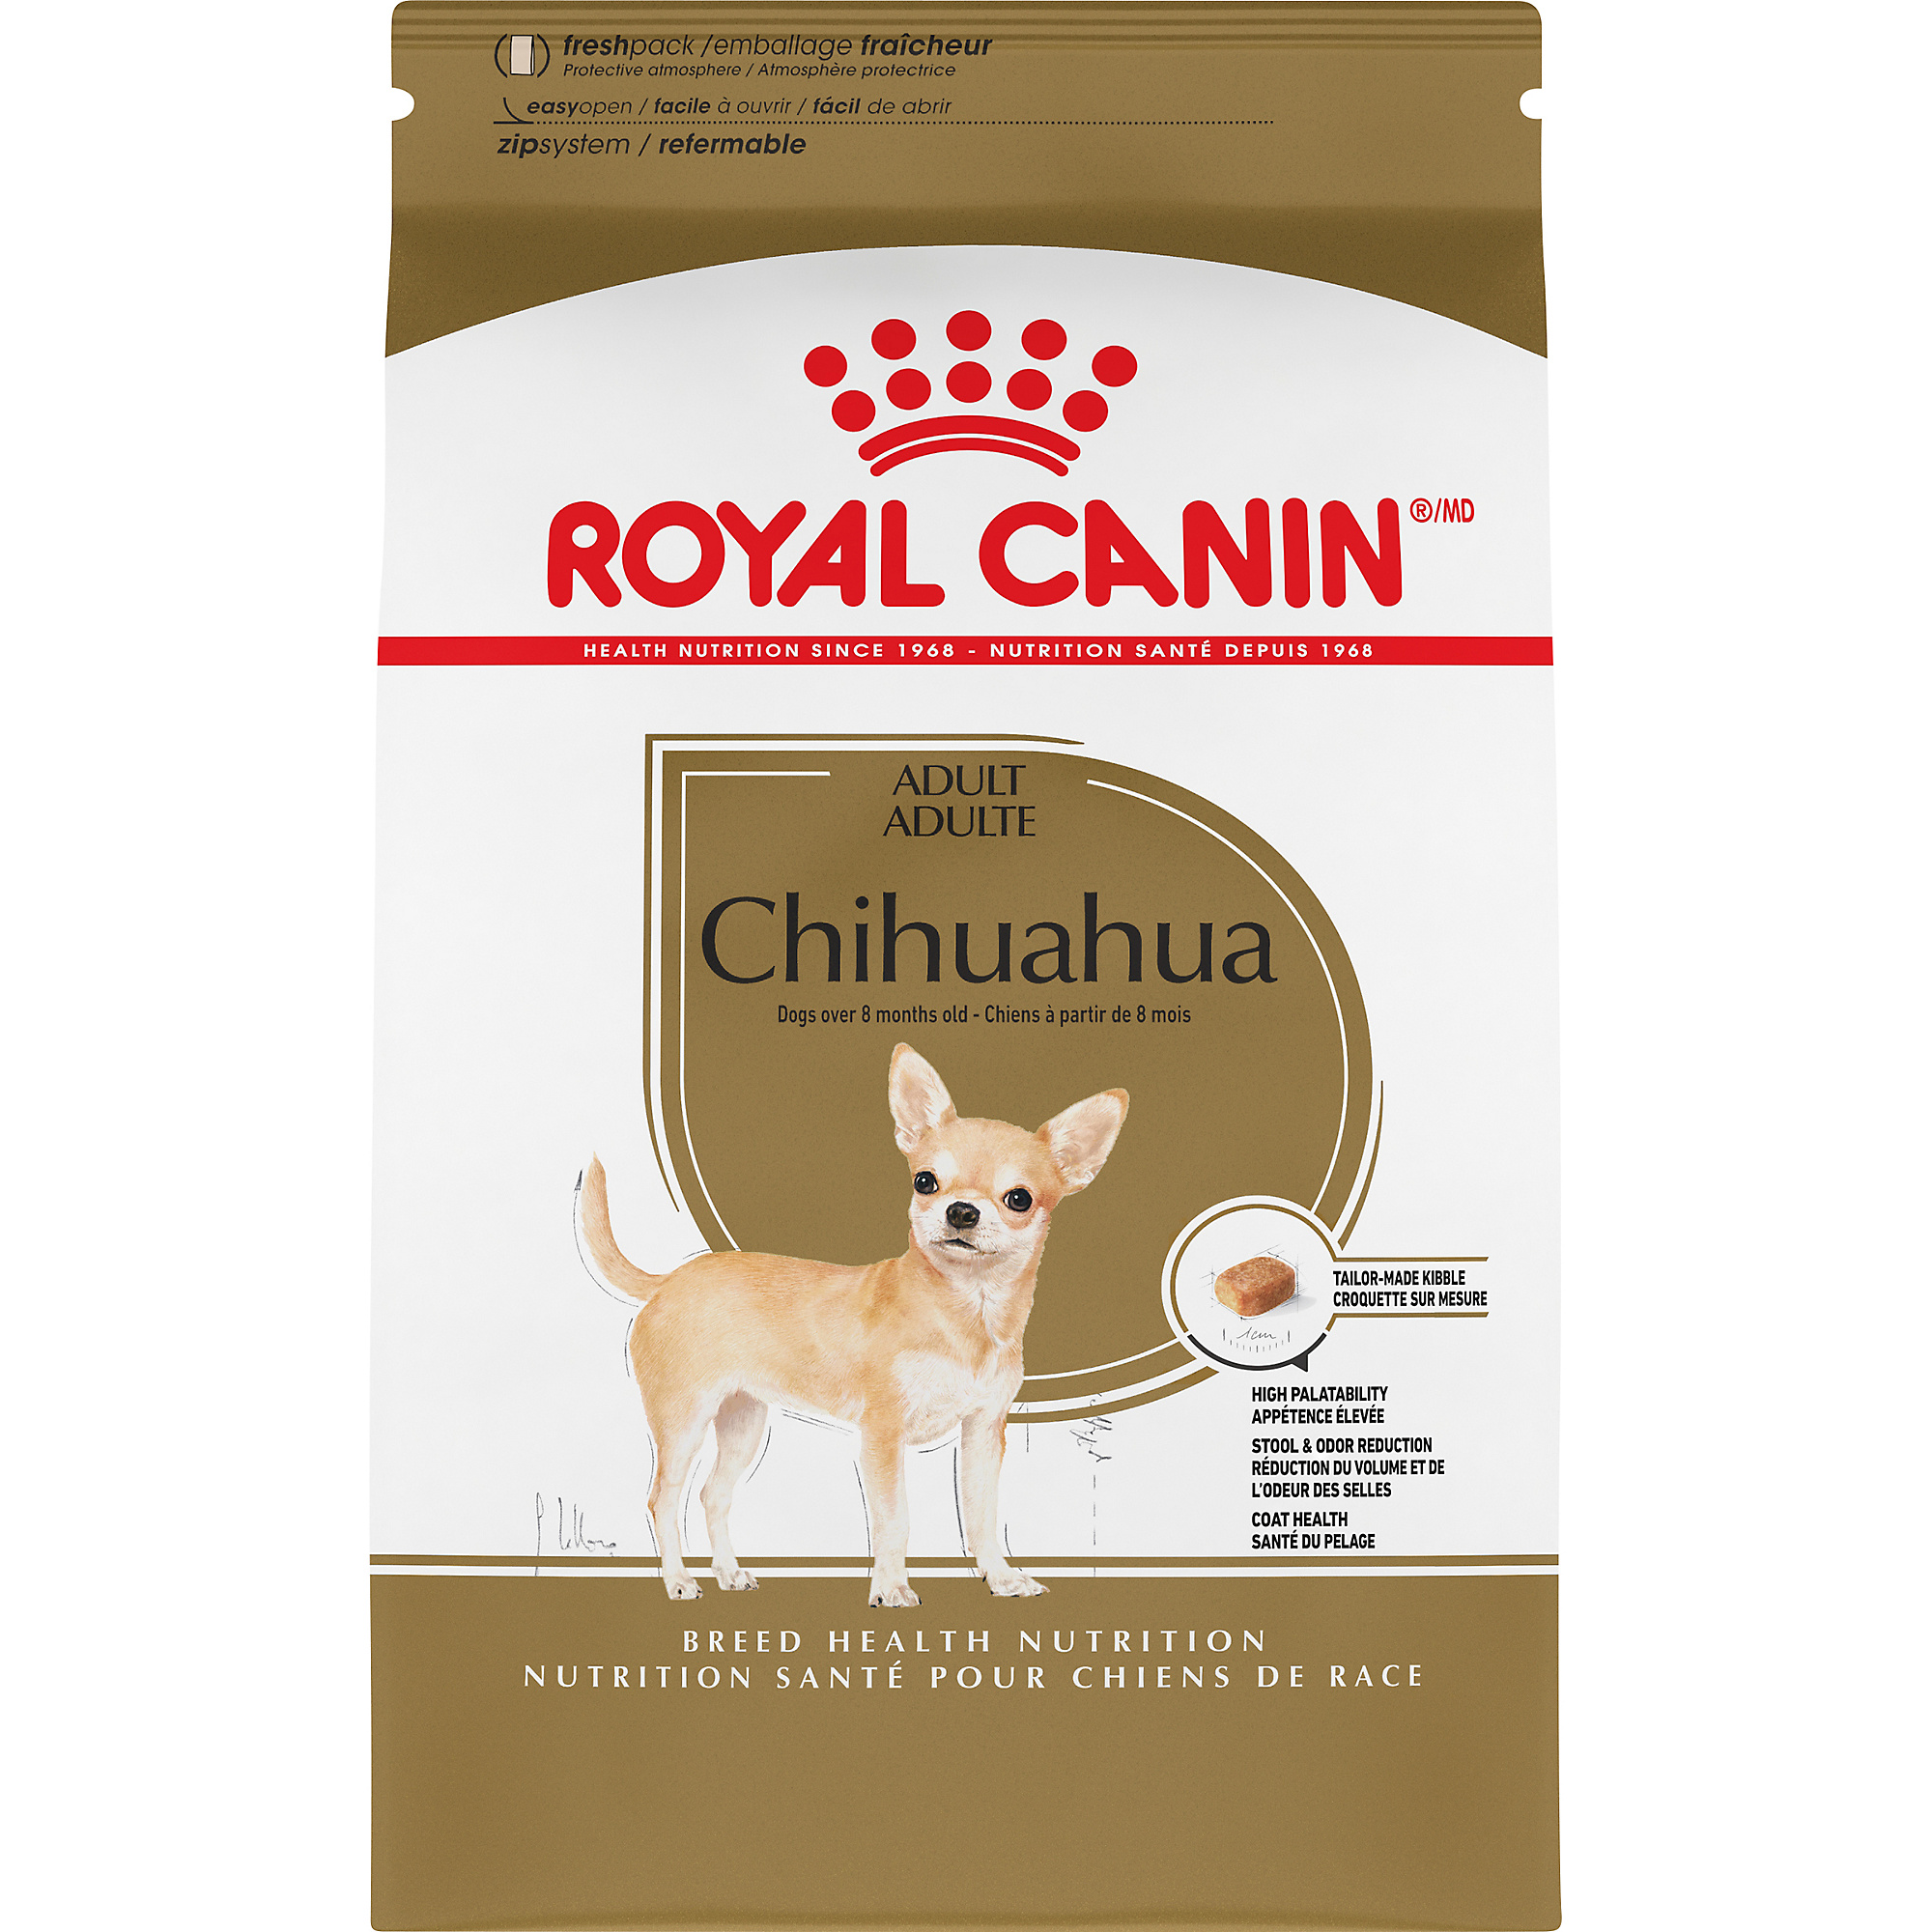 Royal Canin Breed Health Nutrition Chihuahua Adult Dry Dog Food Image